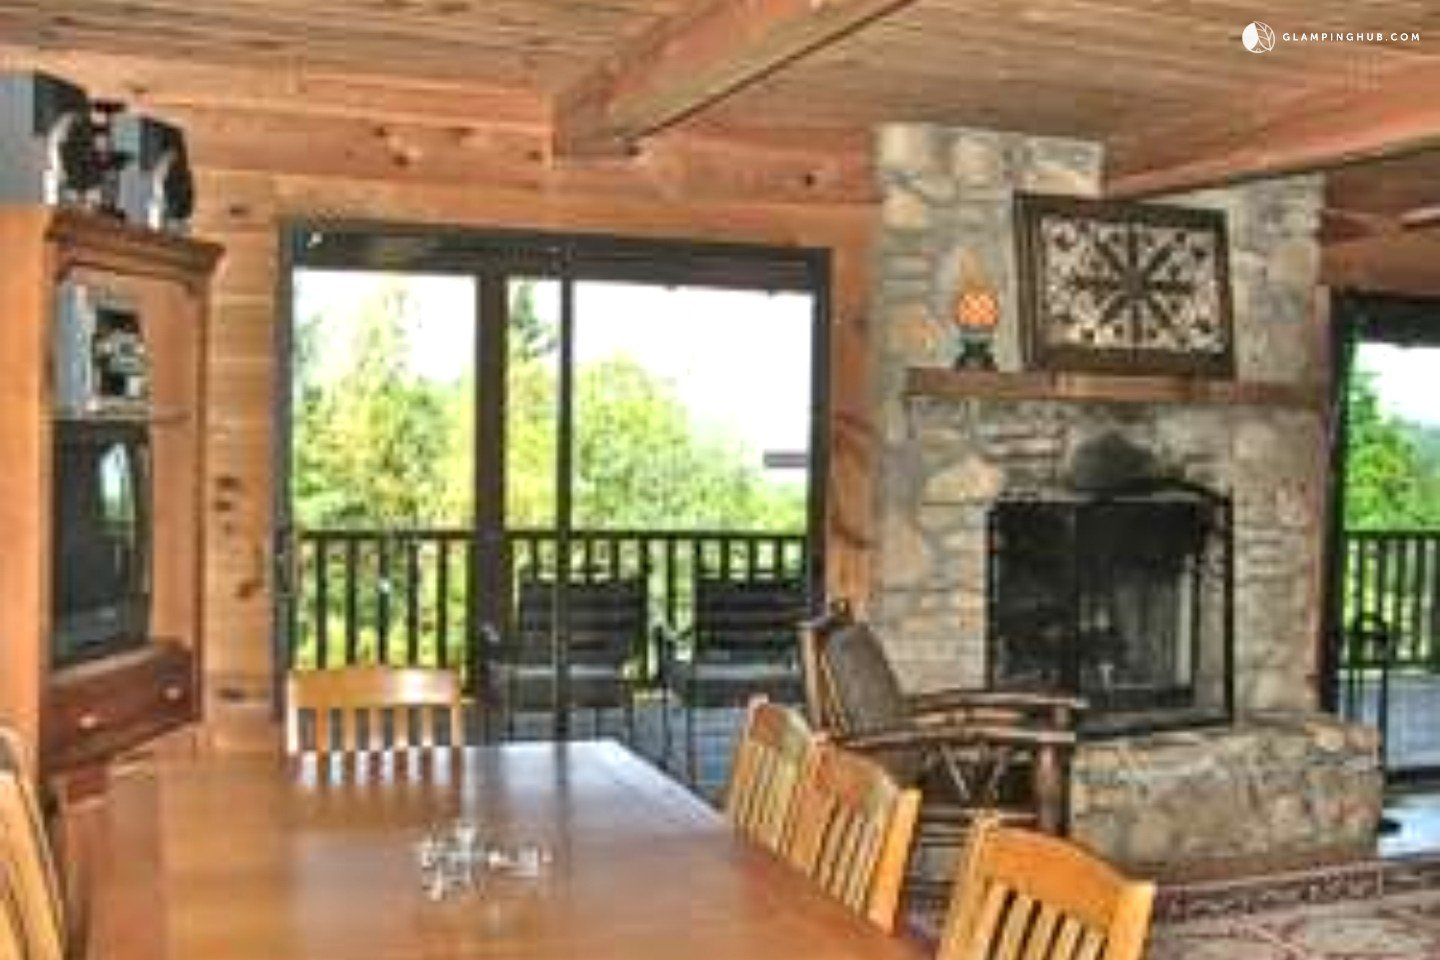 Cabin rental in asheville north carolina for Asheville nc lodging cabins